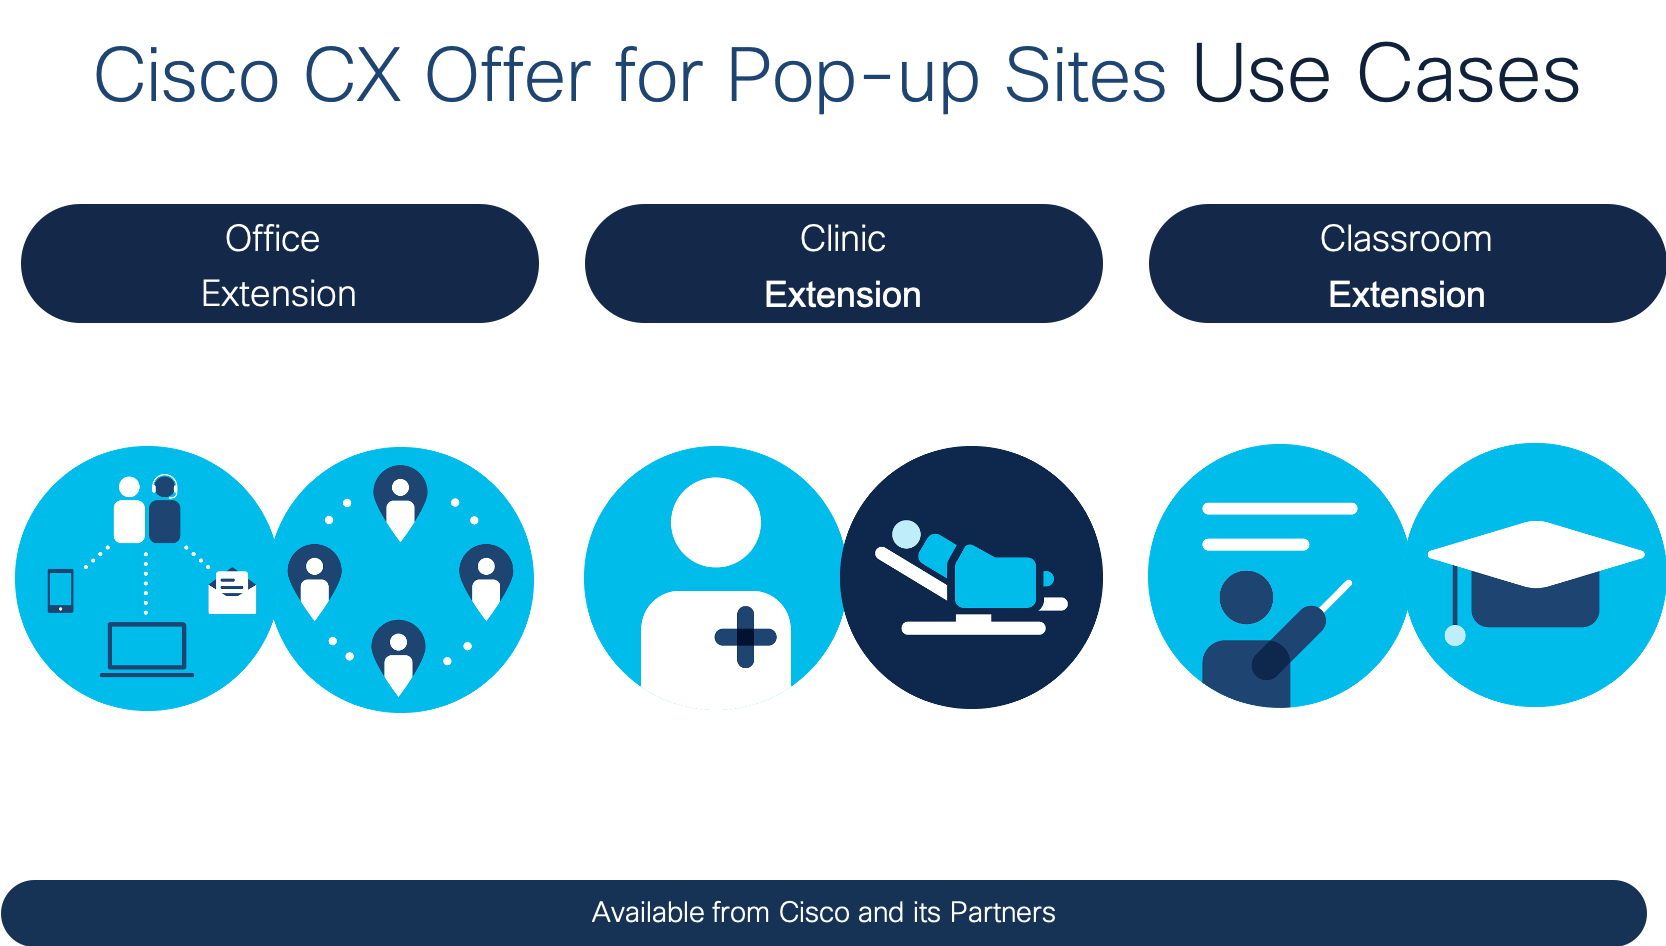 Pop-up Sites Use Cases